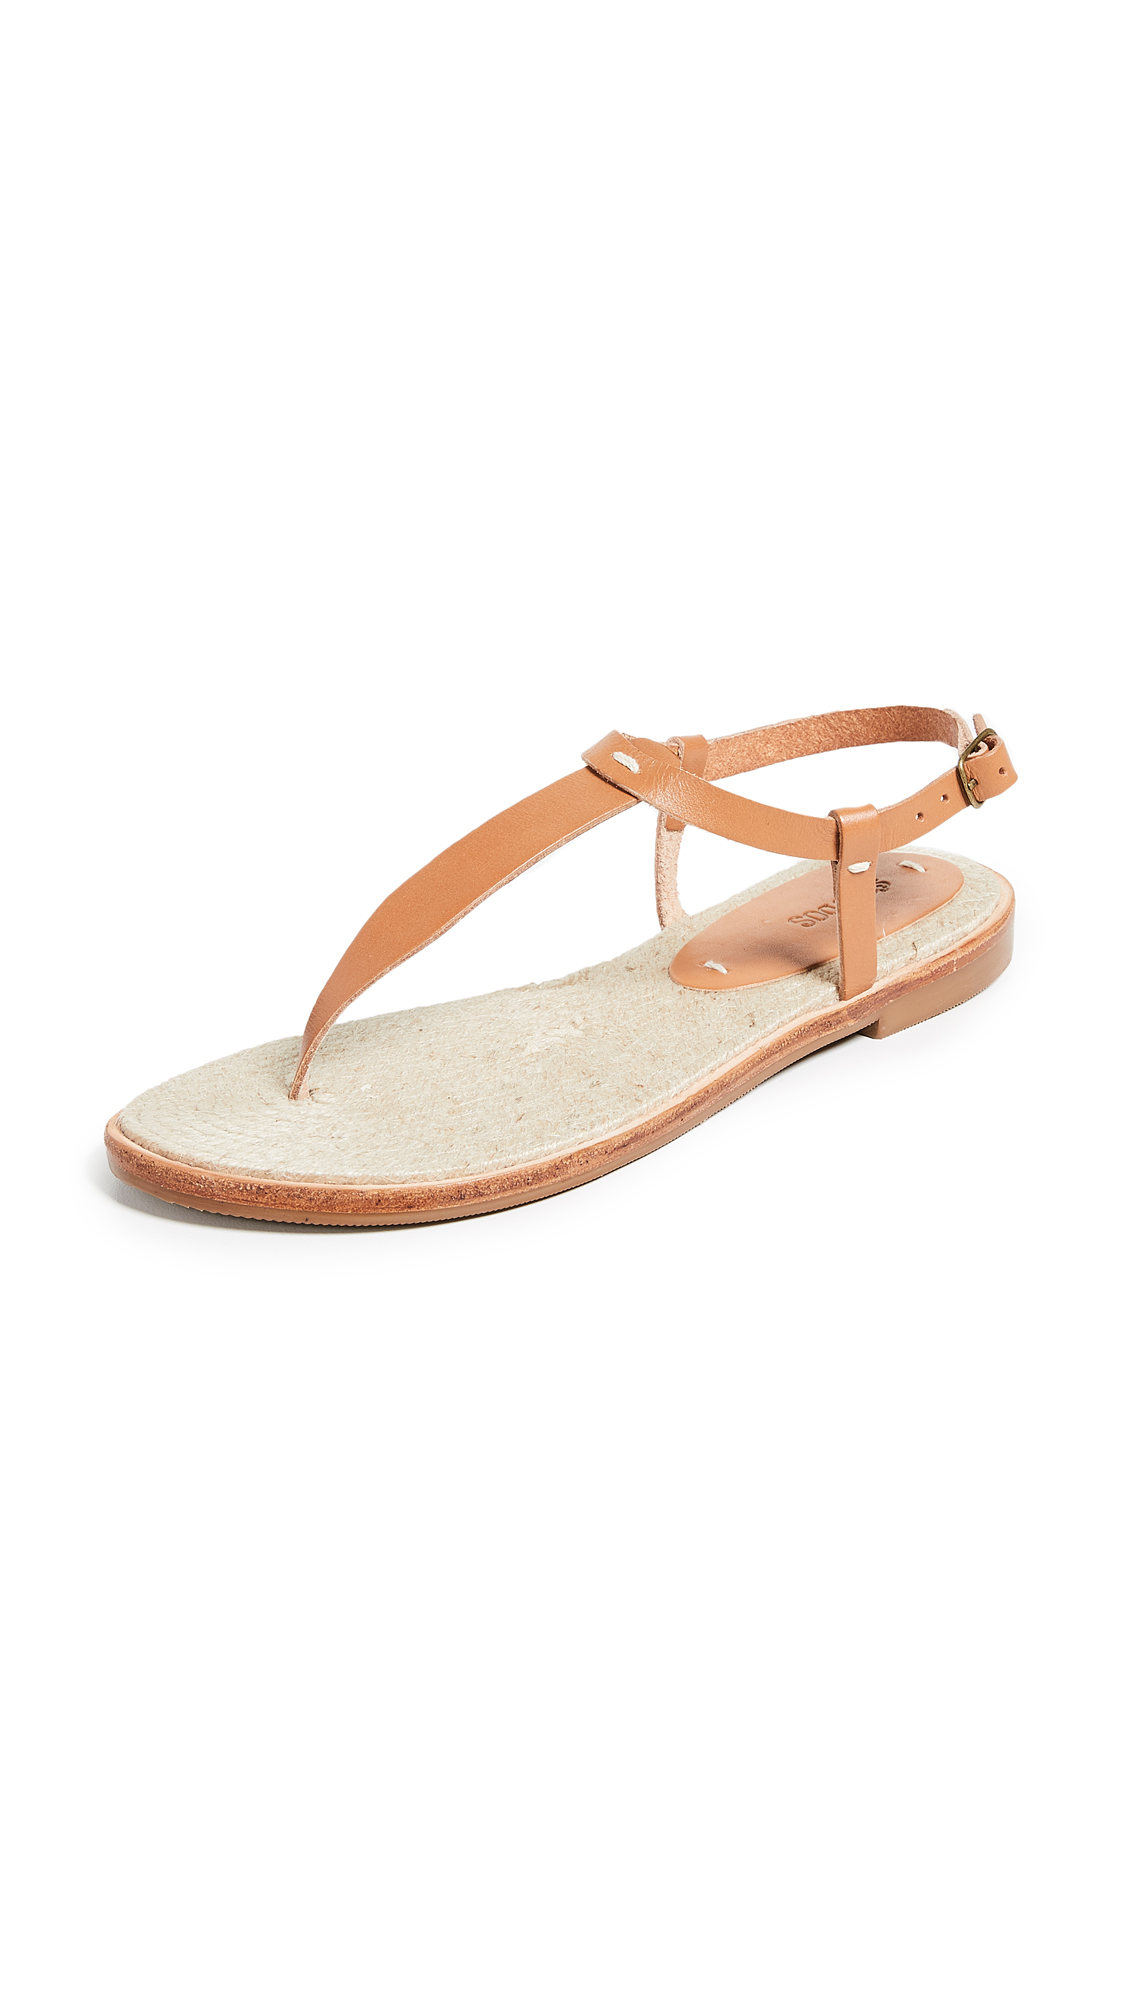 Soludos Classic Leather Flip Flops - Nude